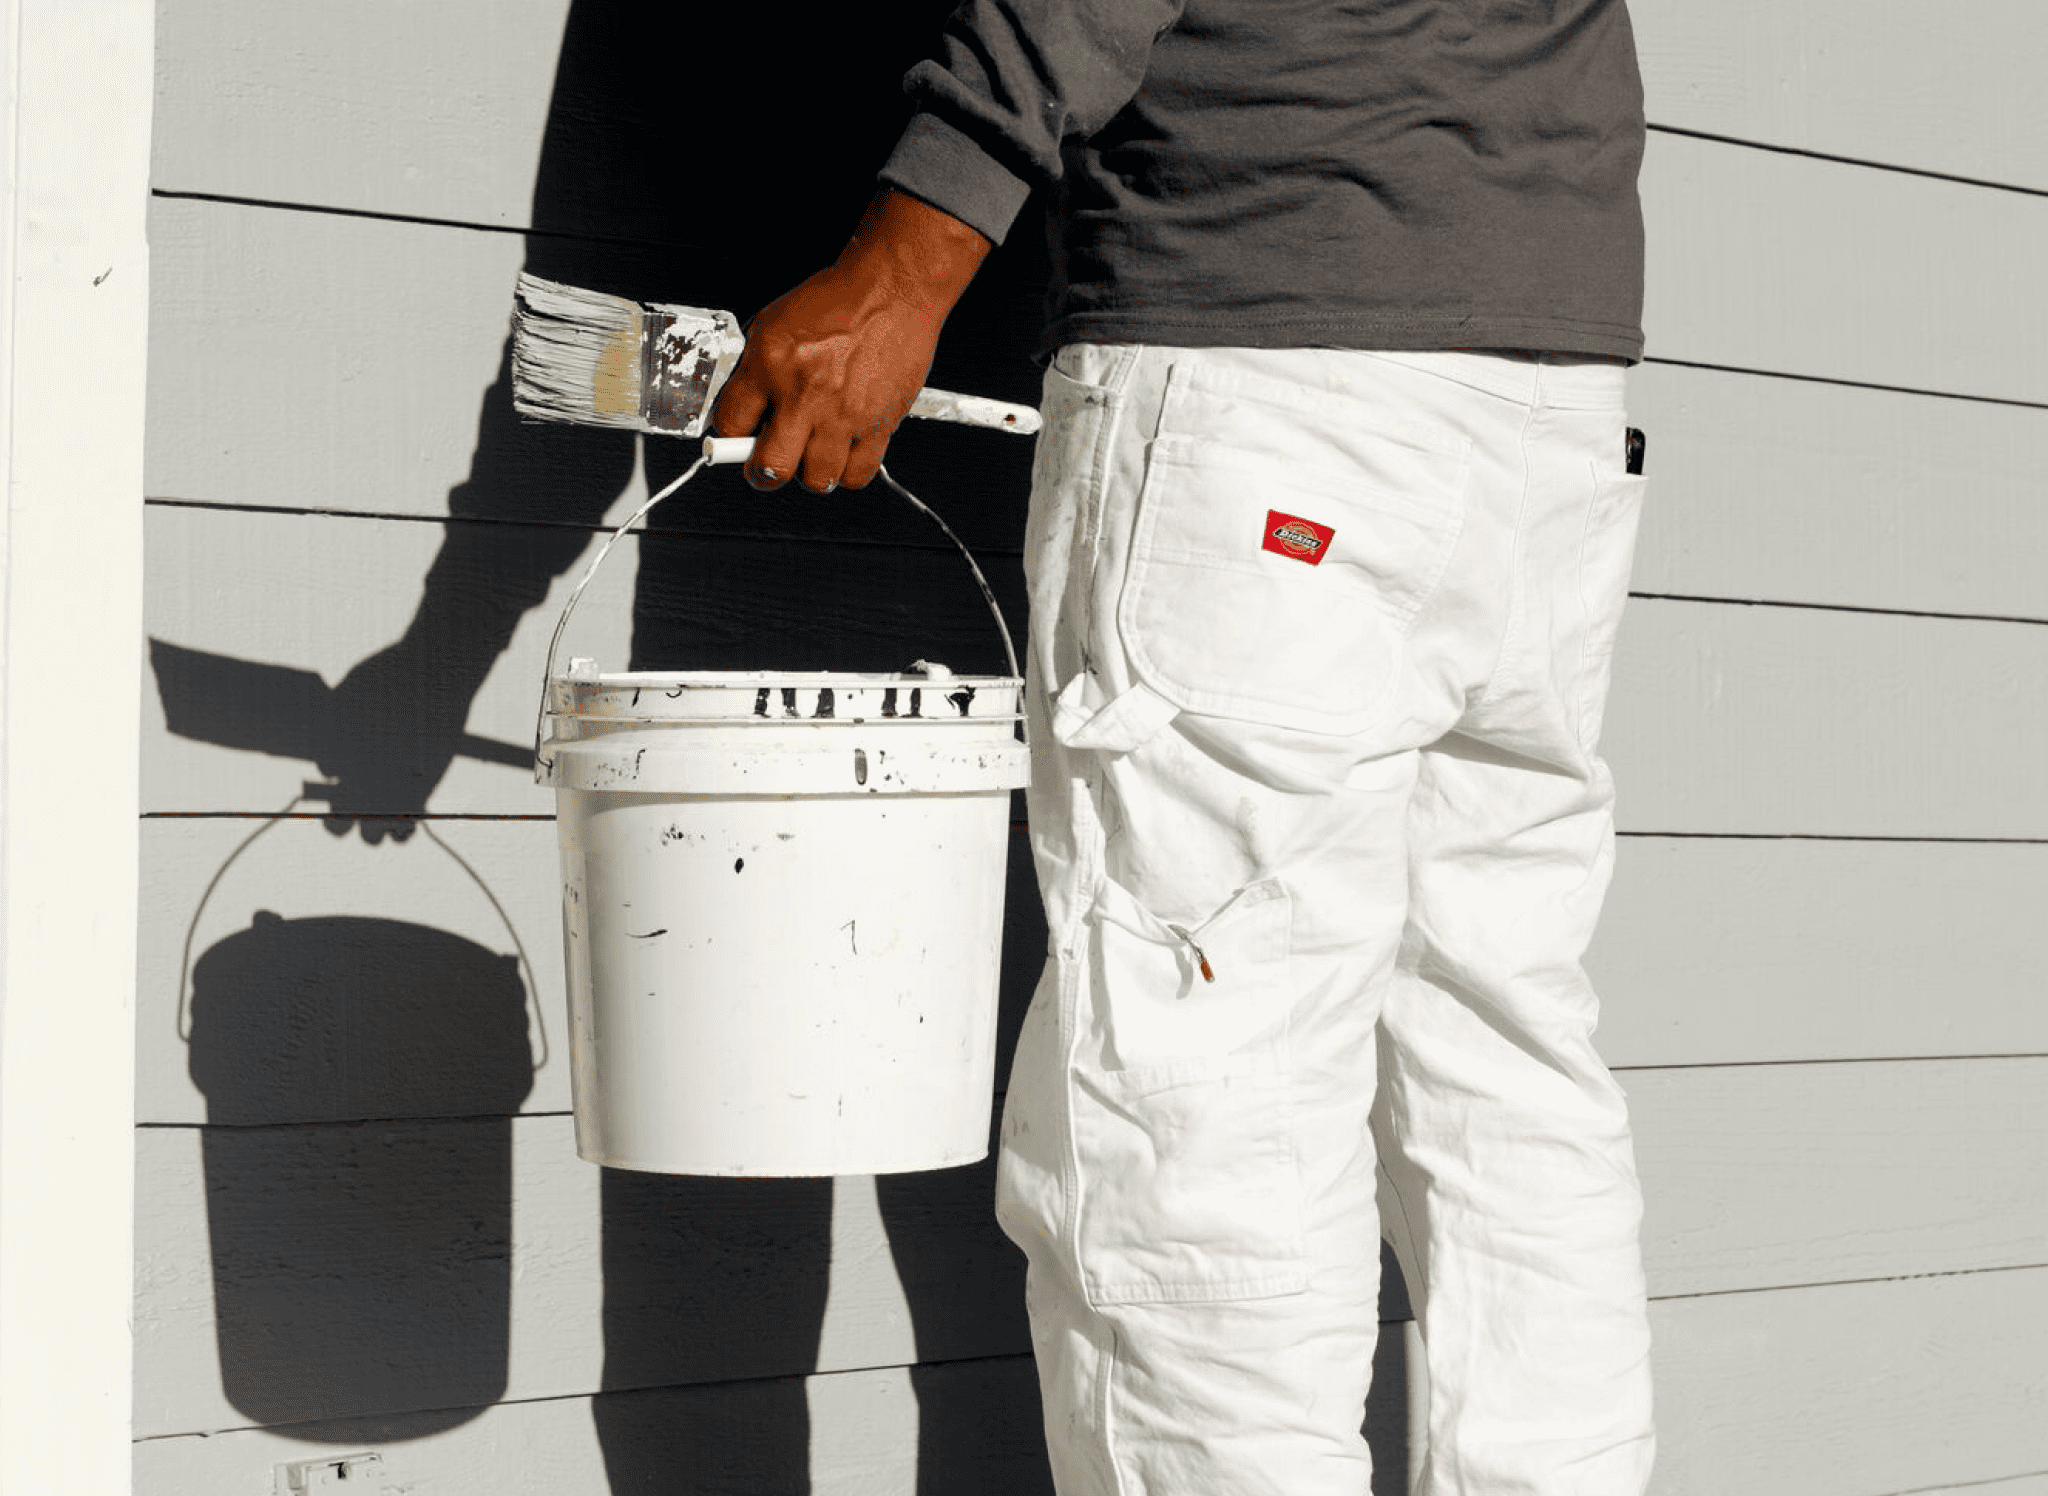 painter holding paint bucket and paint brush